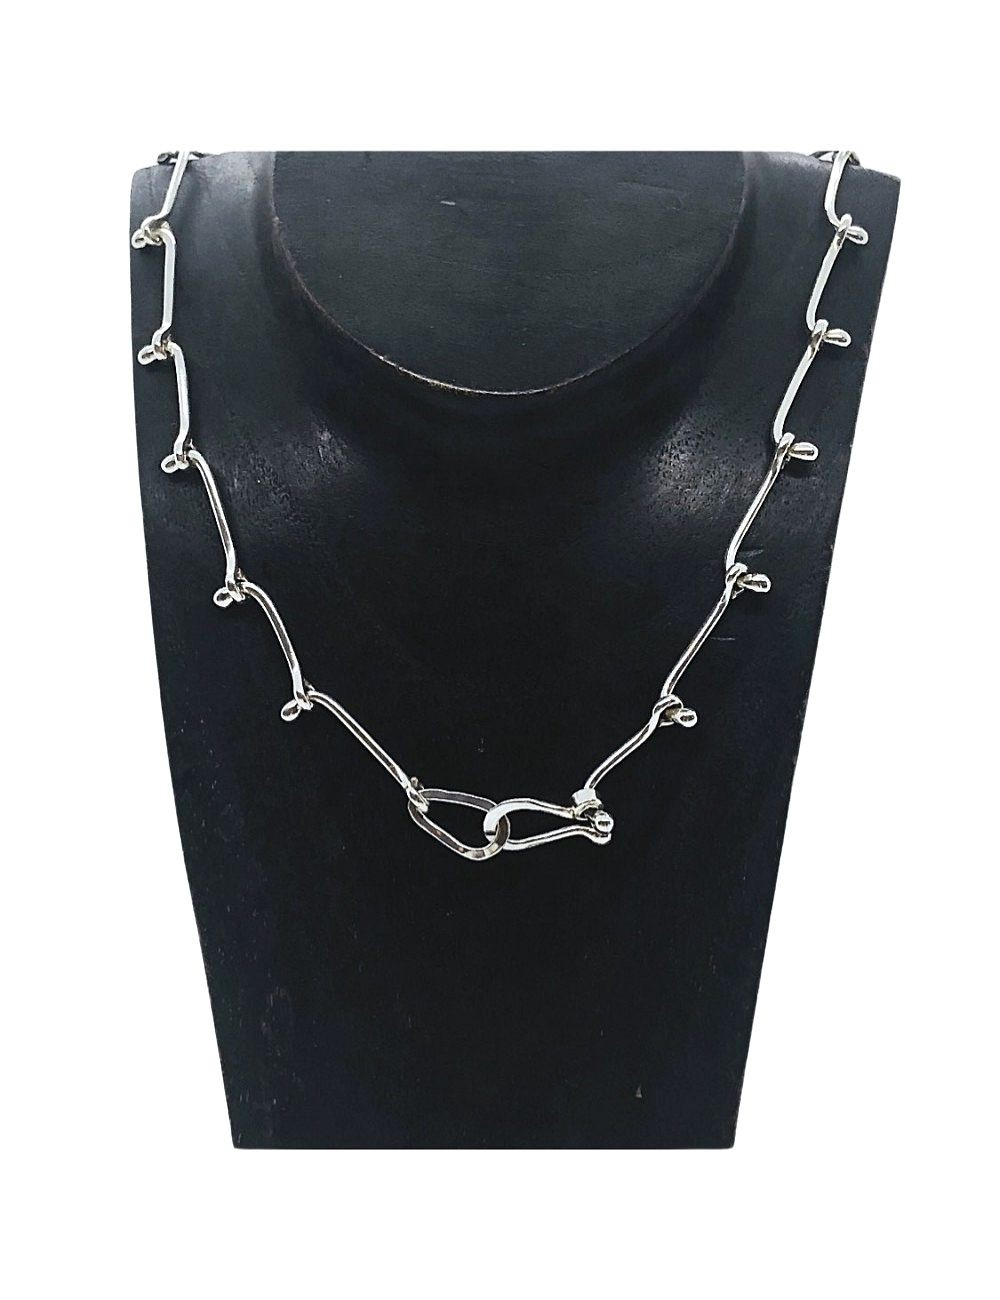 Ball and Link Necklace